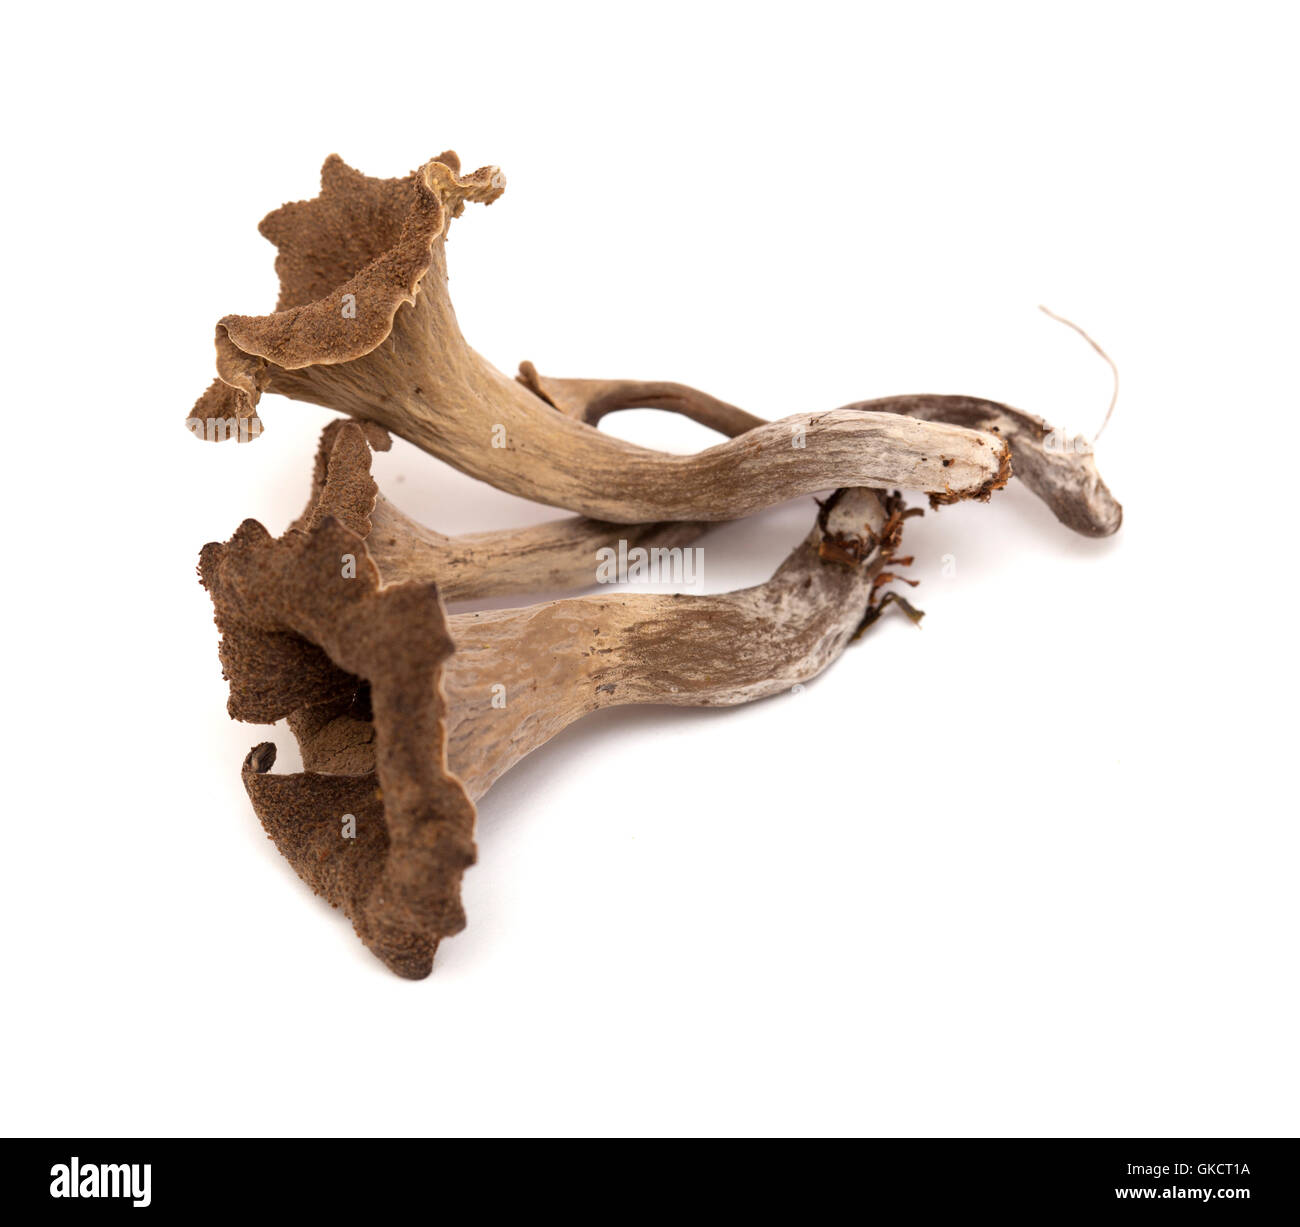 trumpet of the dead edible mushroom isolated on white background Stock Photo